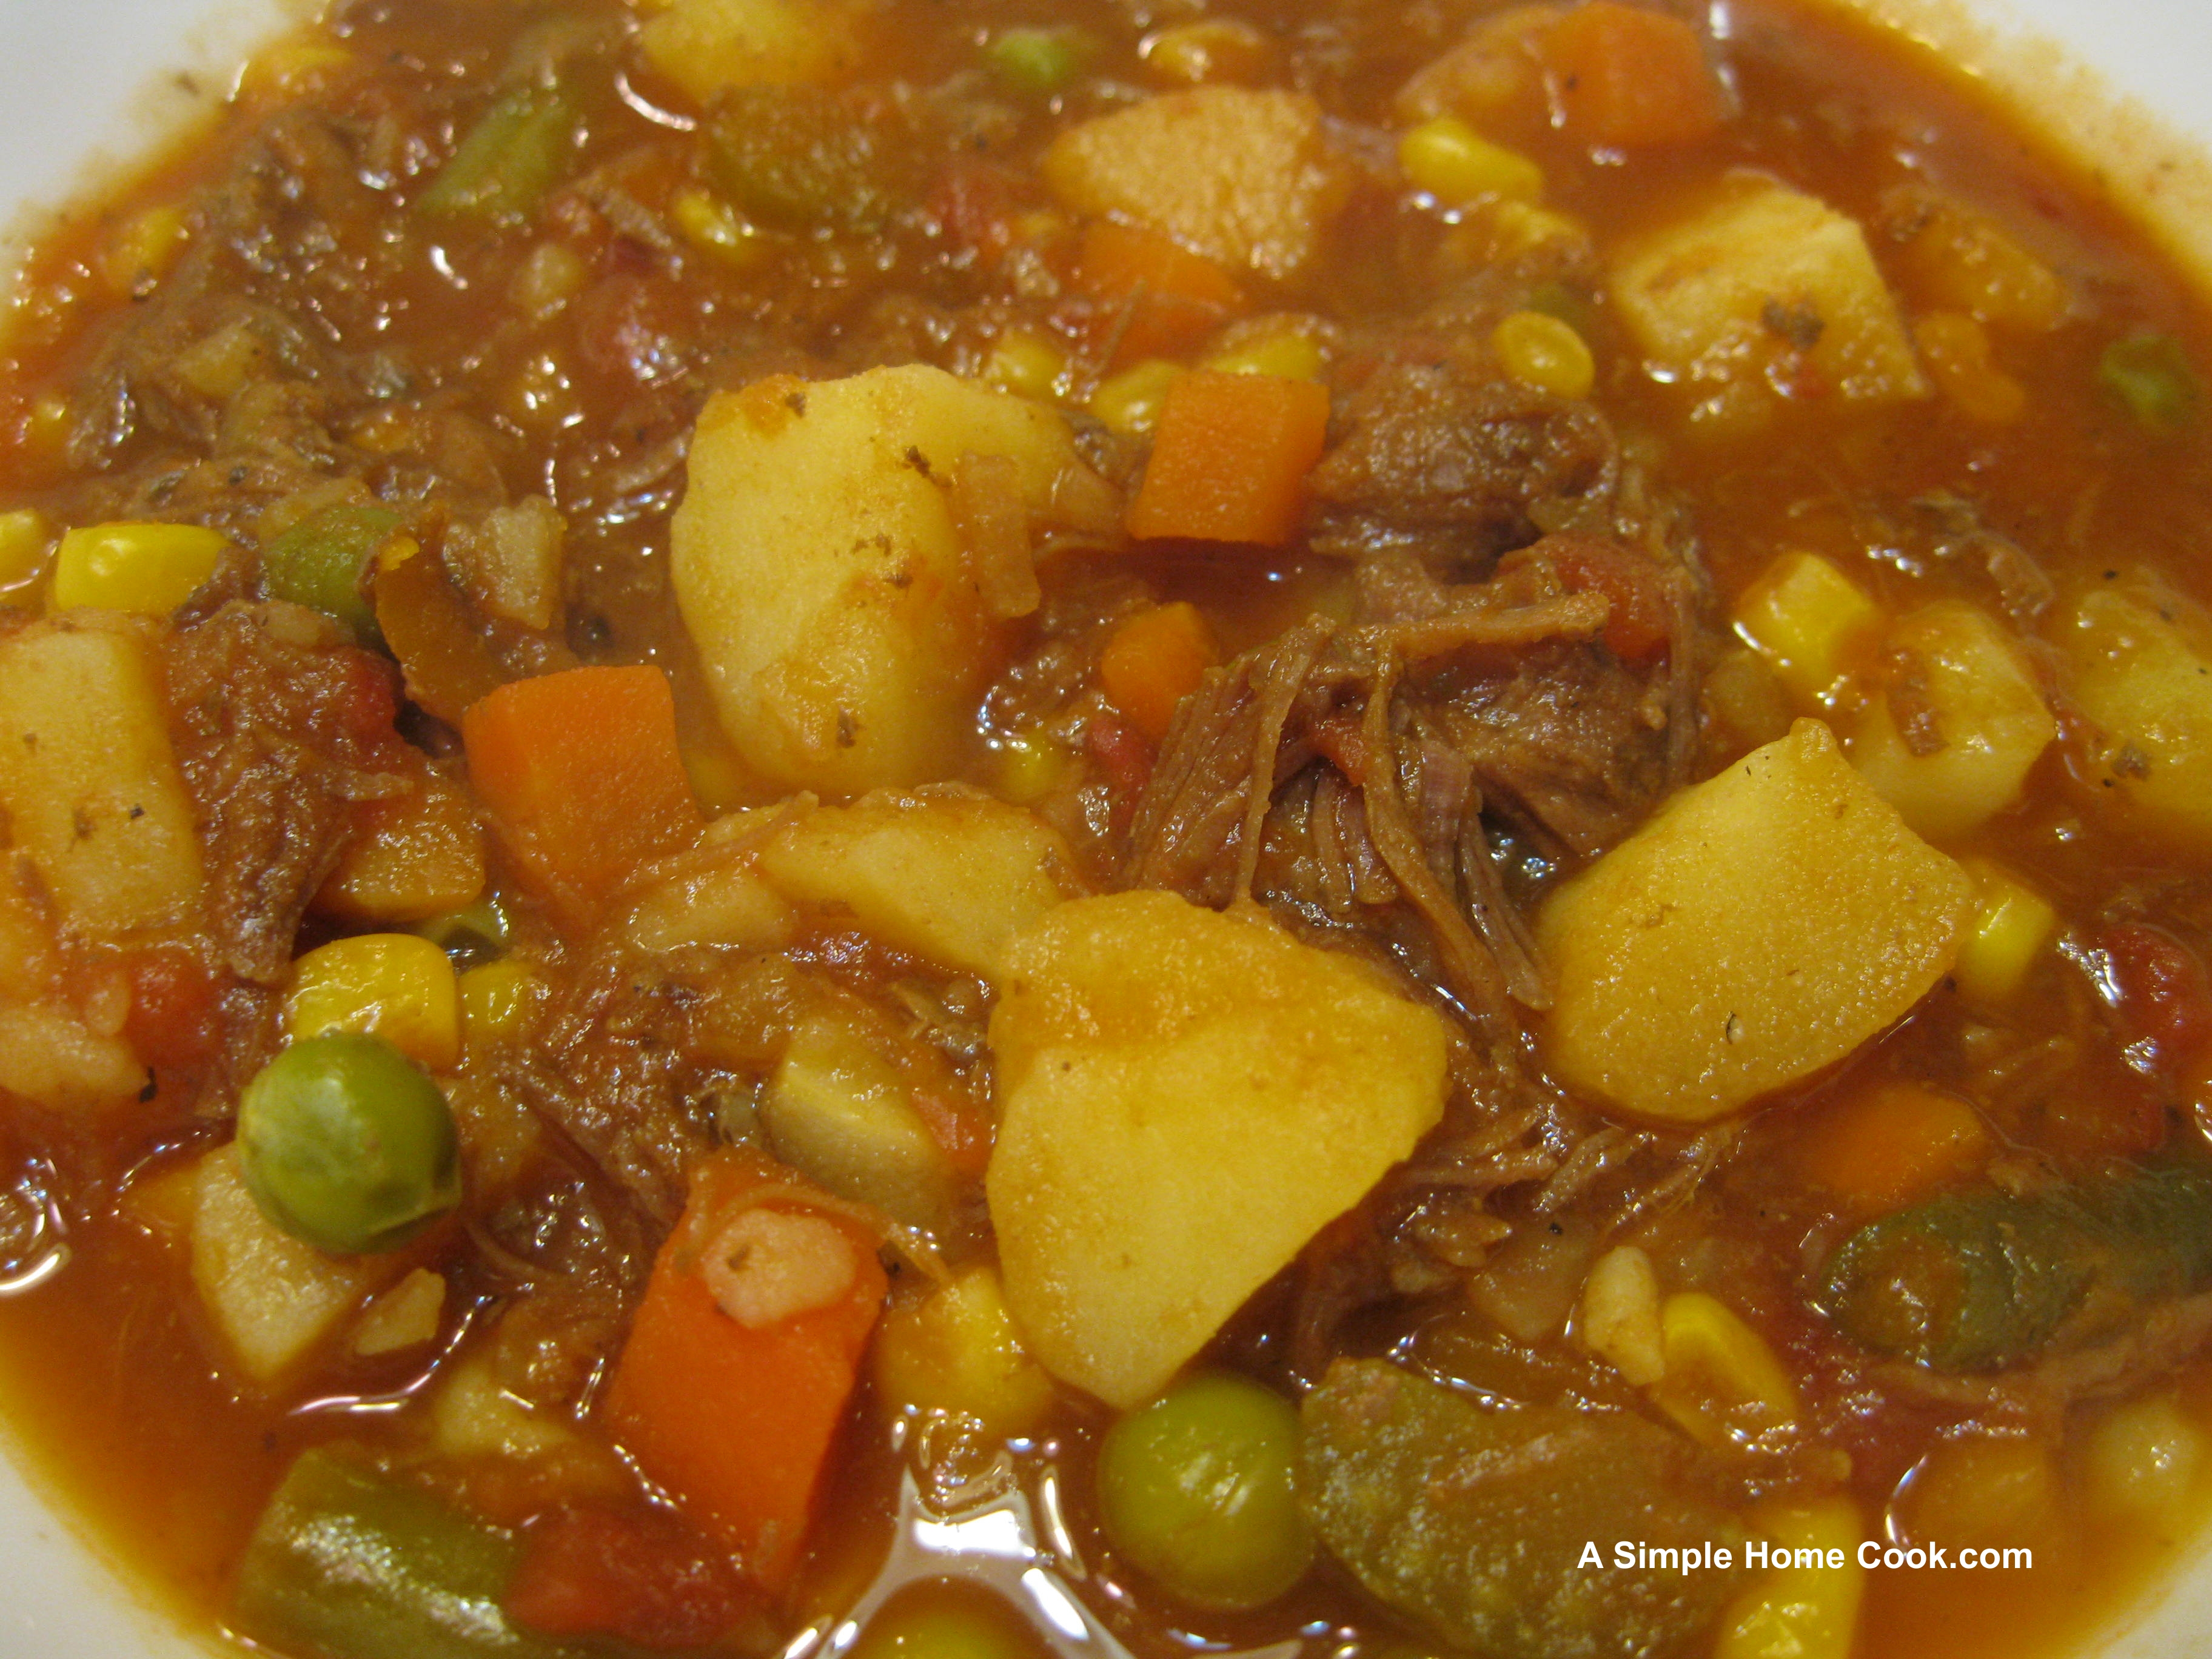 Beef Vegetable Soup - Viewing Gallery